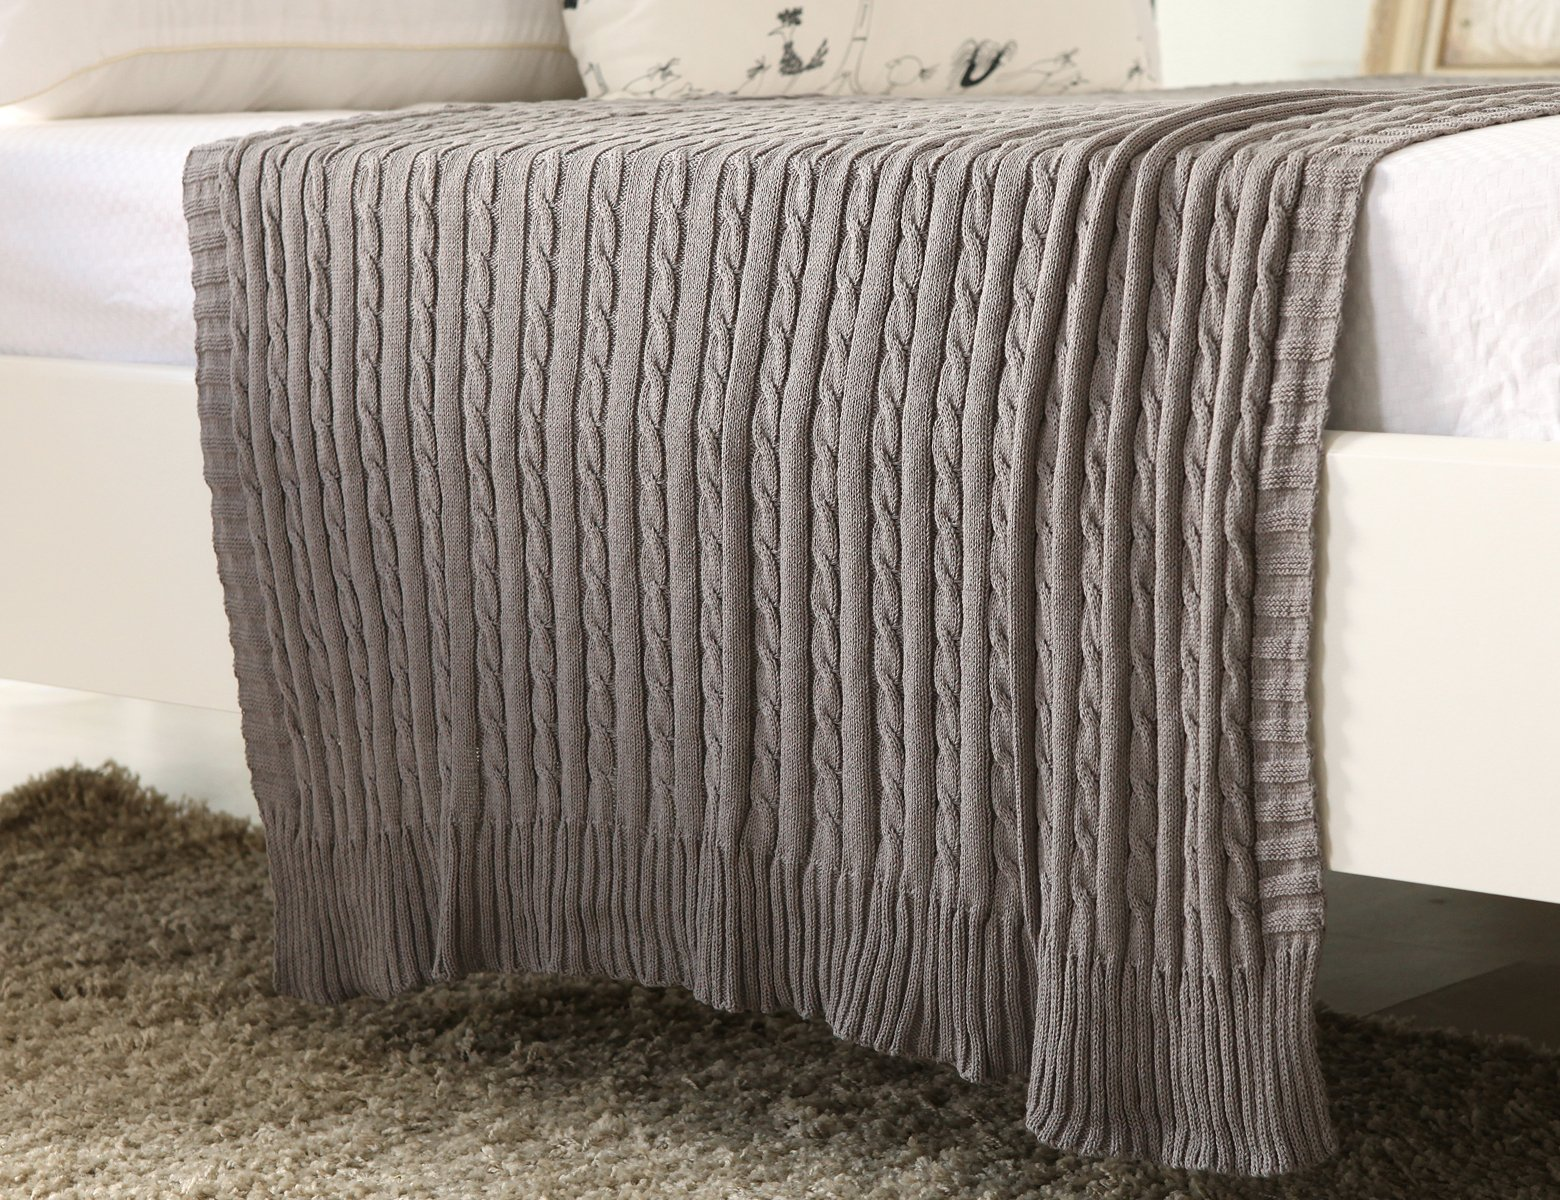 iSunShine Cotton Knitted Cable Throw Soft Warm Cover Blanket Cable Knitting Pattern, 43 by 70 Inches, Taupe Grey